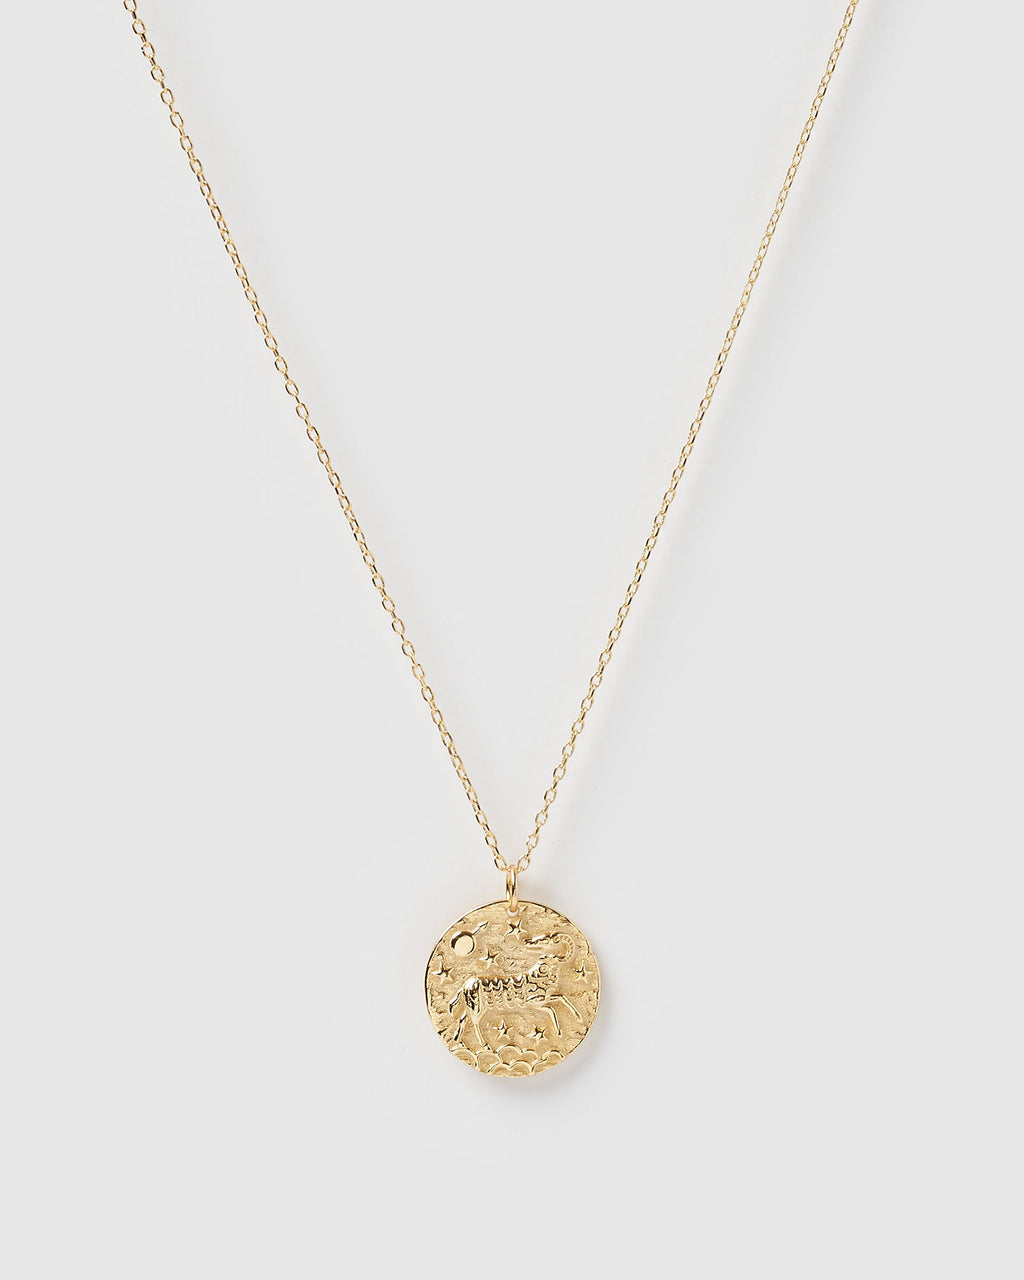 Izoa Star Sign Necklace Aries Gold